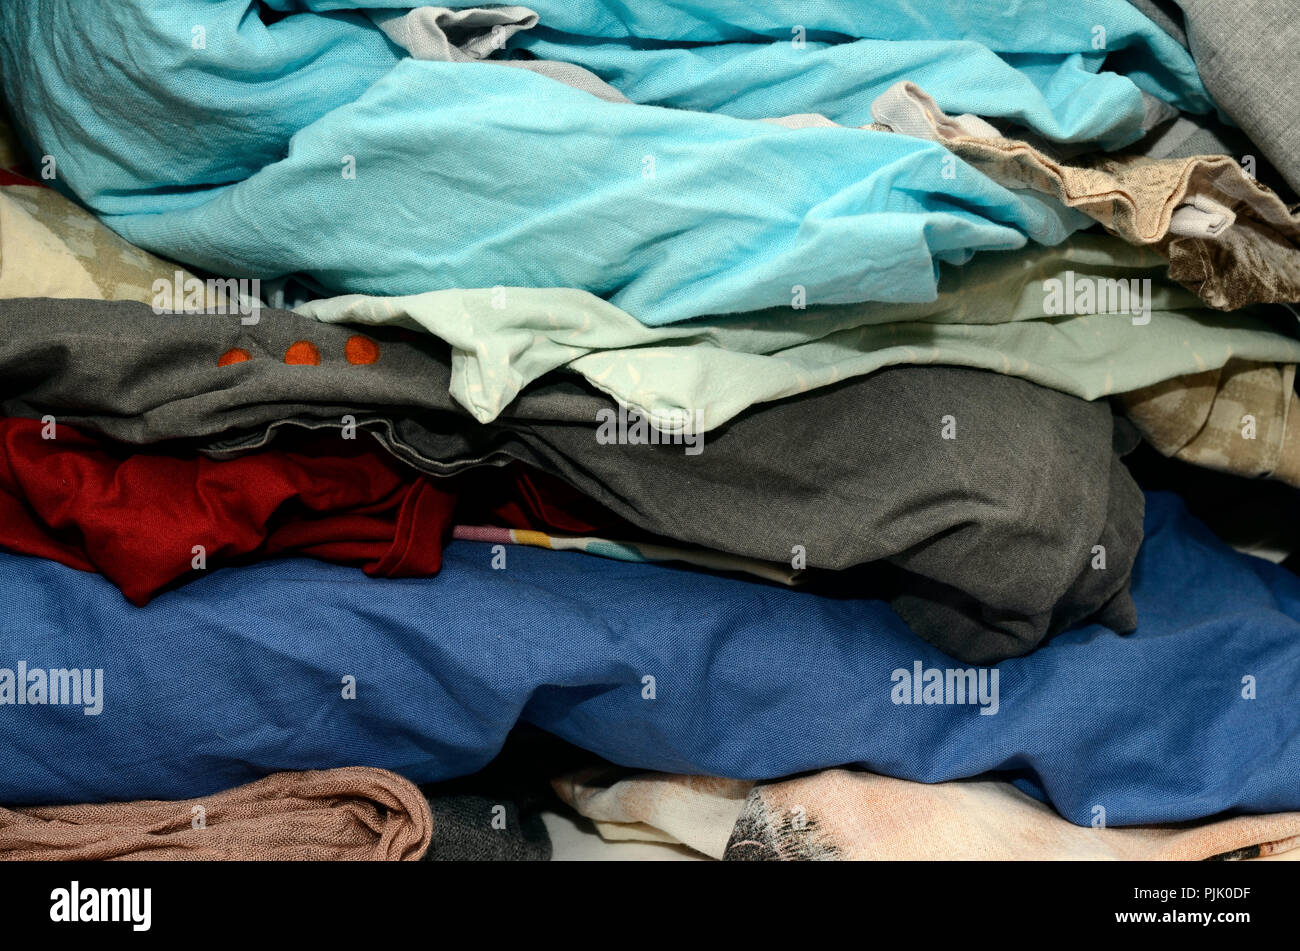 Stack of crumpled sheets for ironing need illustration - Stock Image